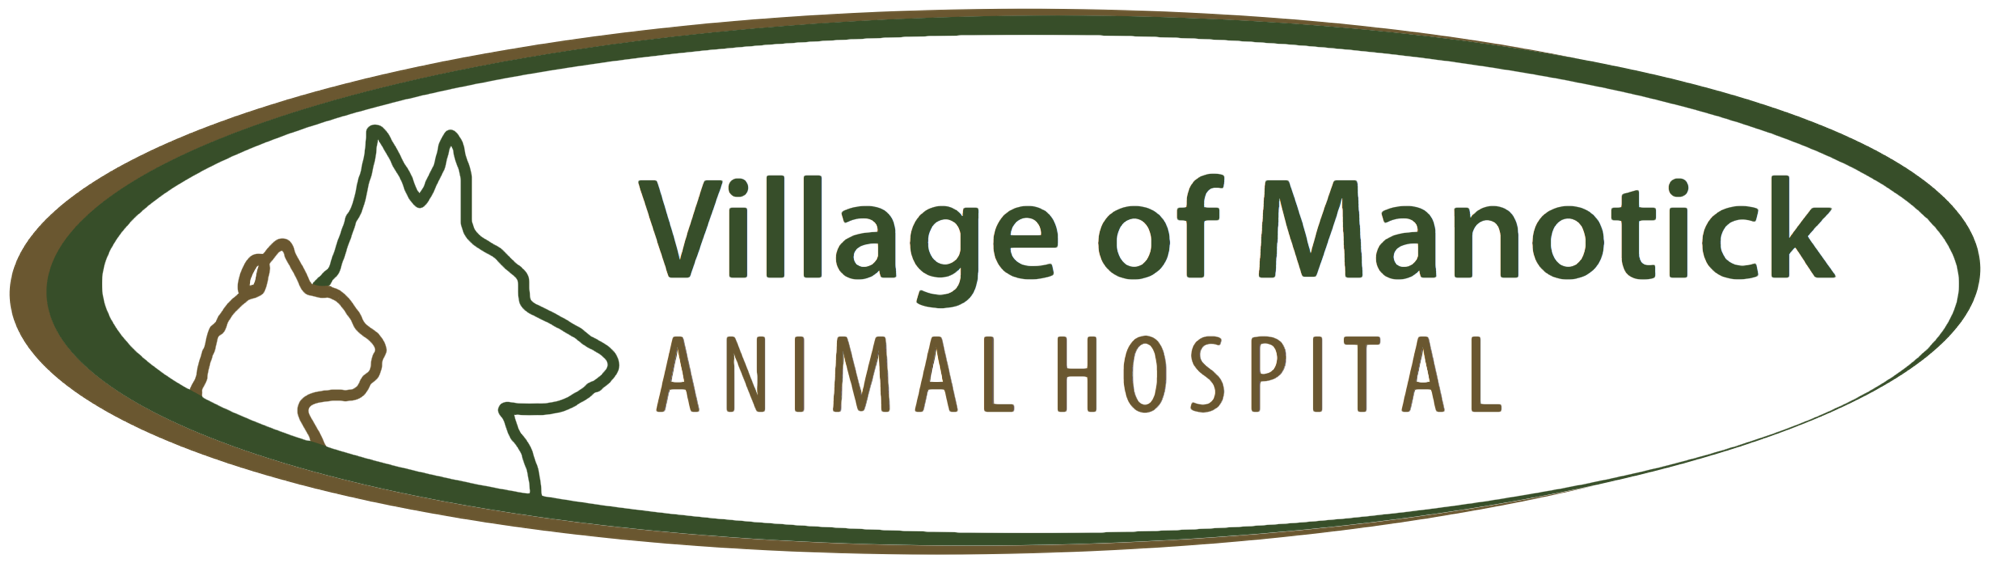 Village of Manotick Animal Hospital Logo